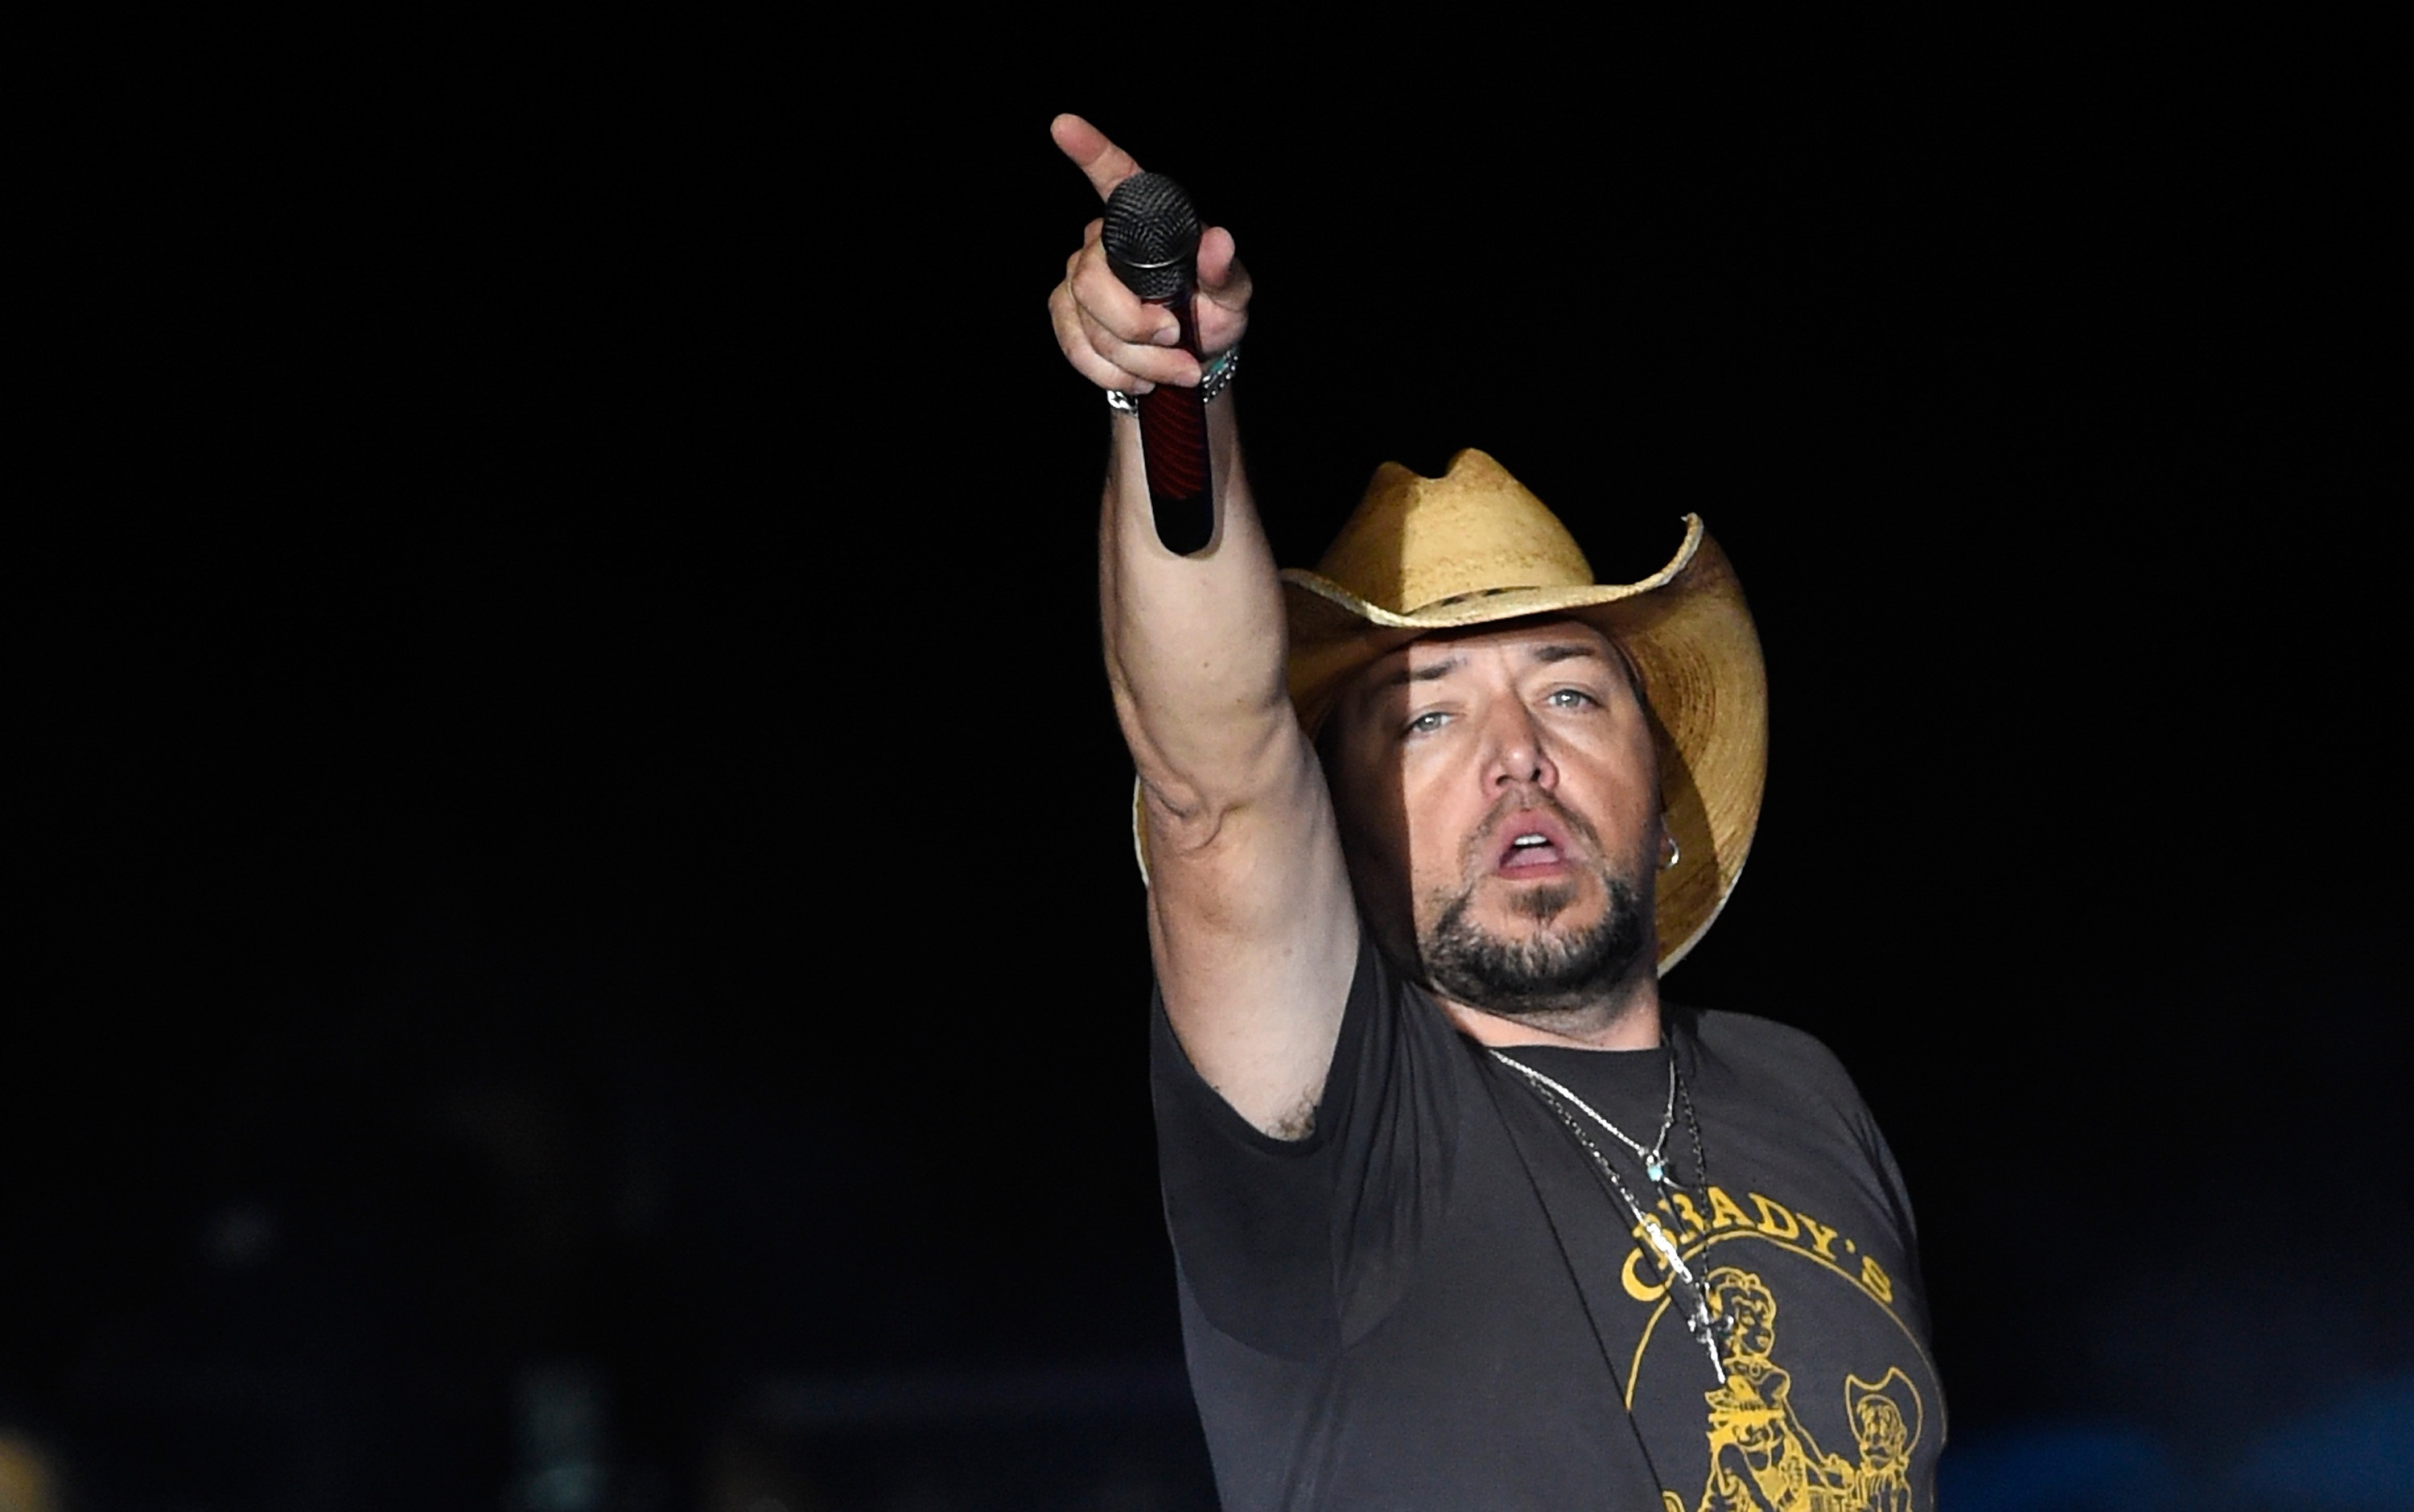 Jason Aldean and Pregnant Wife Safe After Mass Shooting in Las Vegas